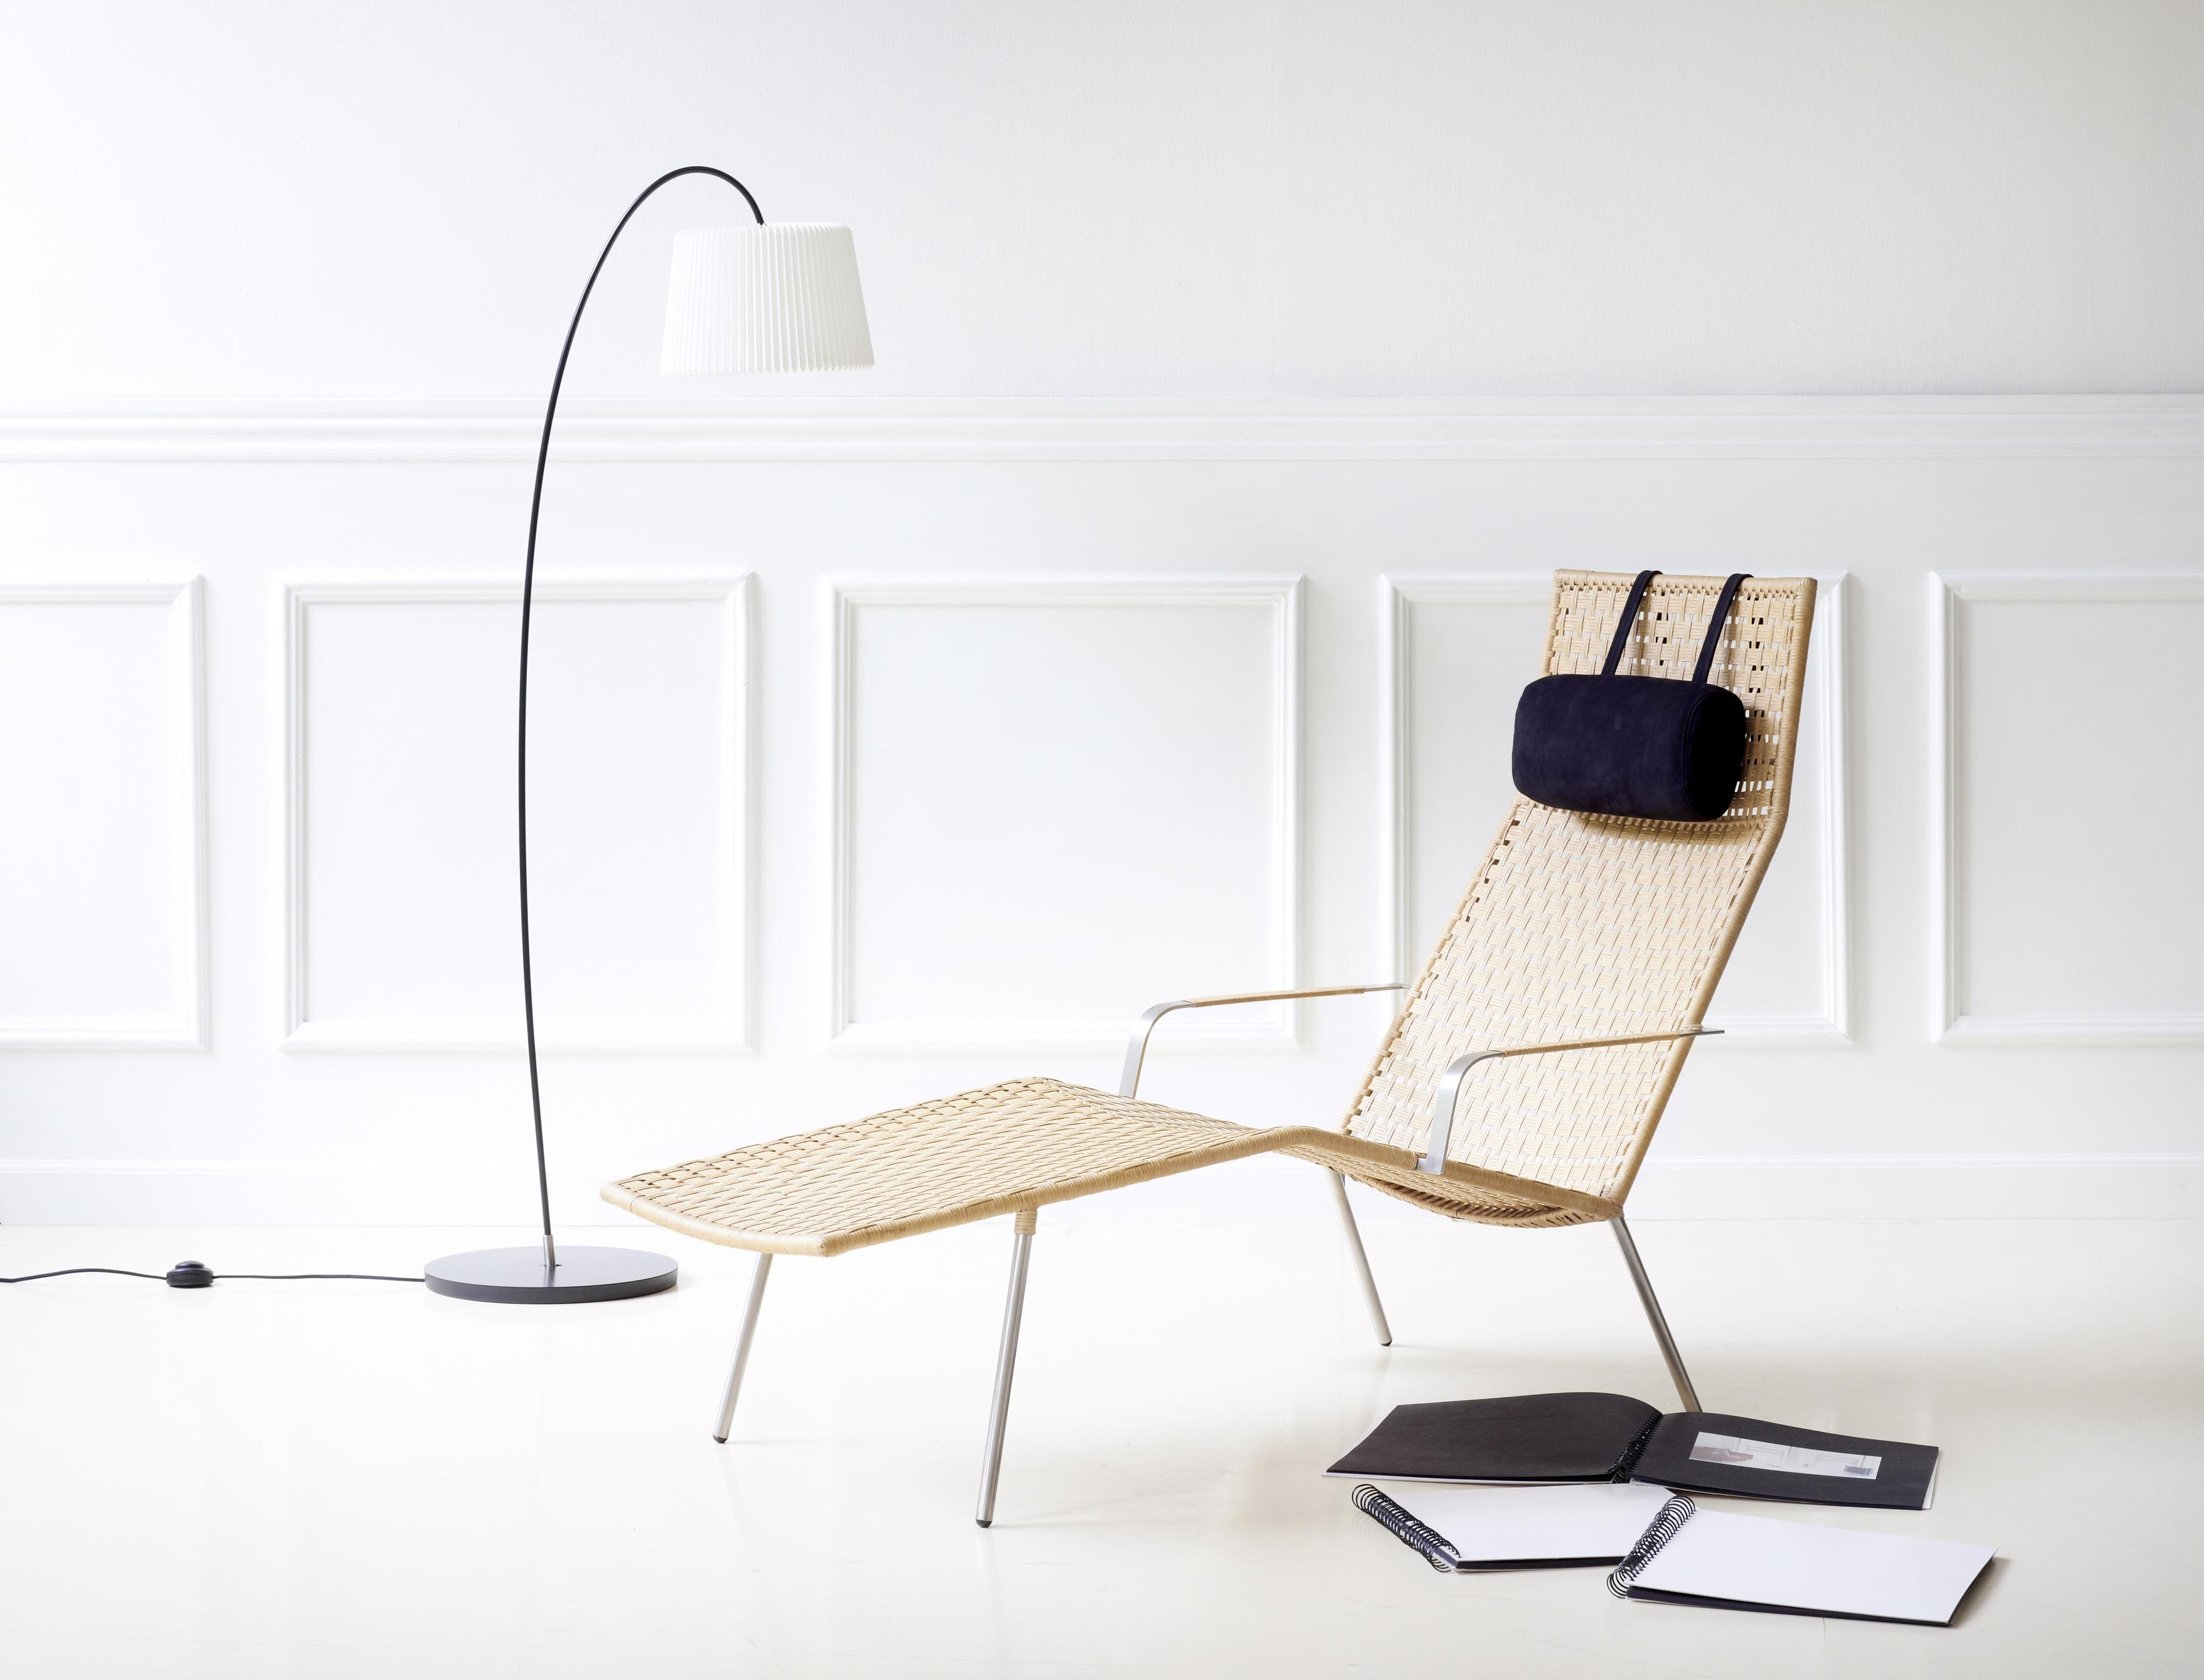 The Straw chaiselounge combines classic weave with